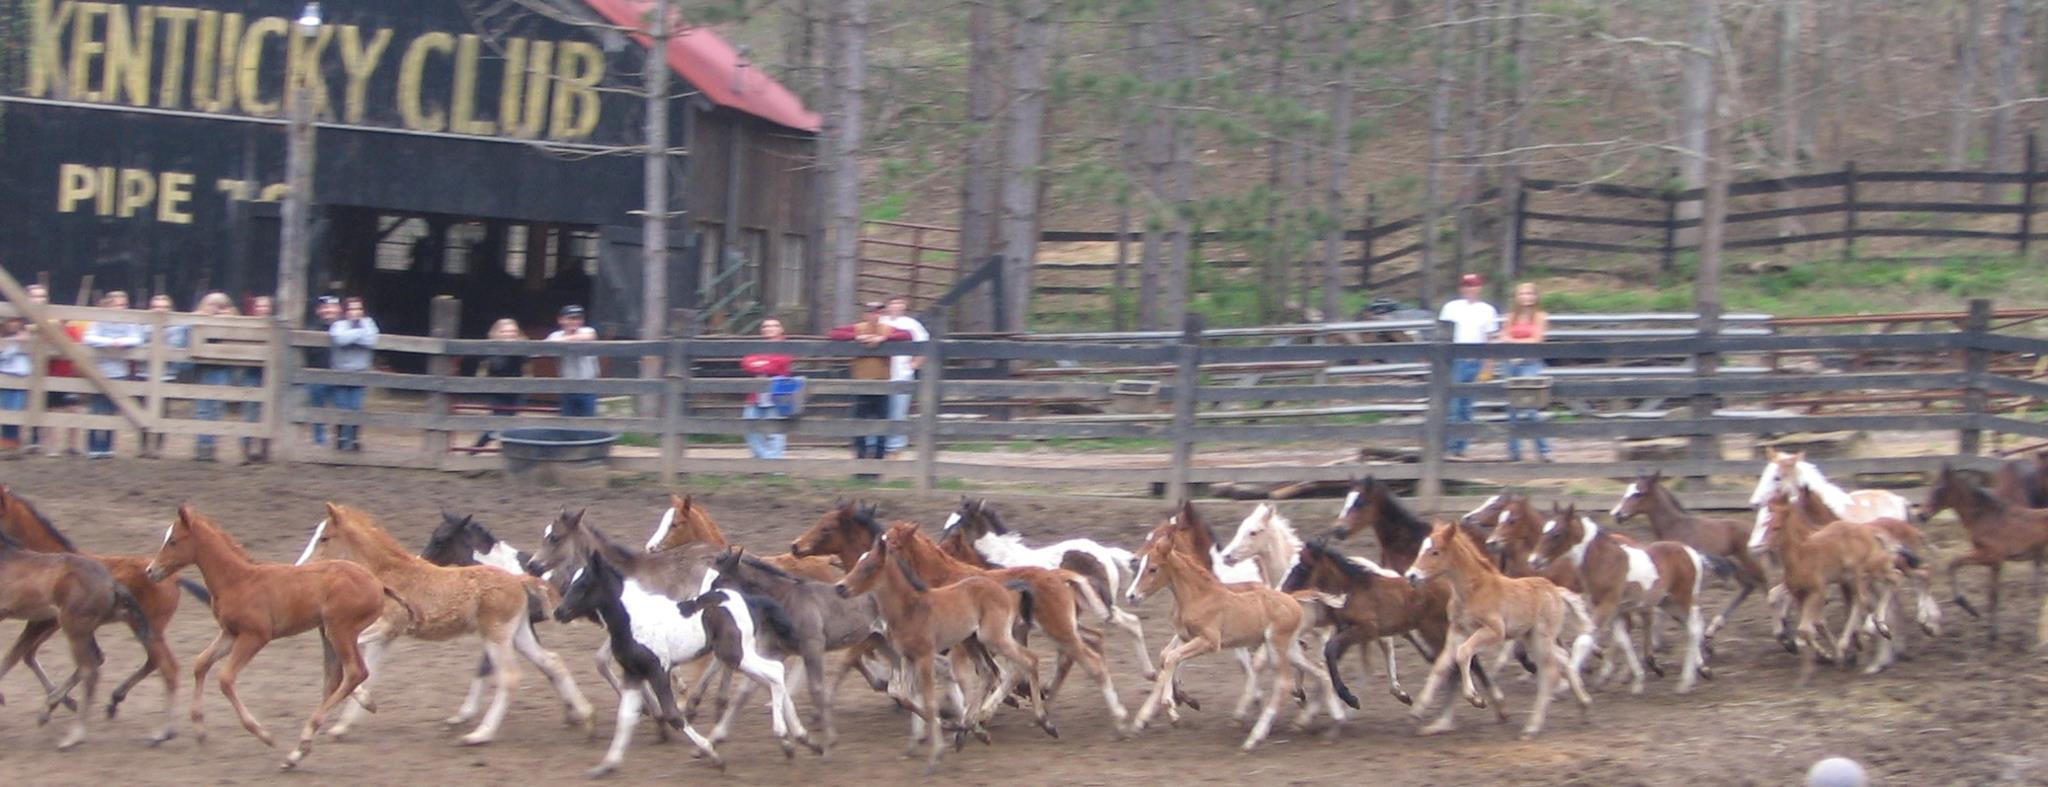 A herd of very lucky nurse mare foals at the Last Chance Corral.